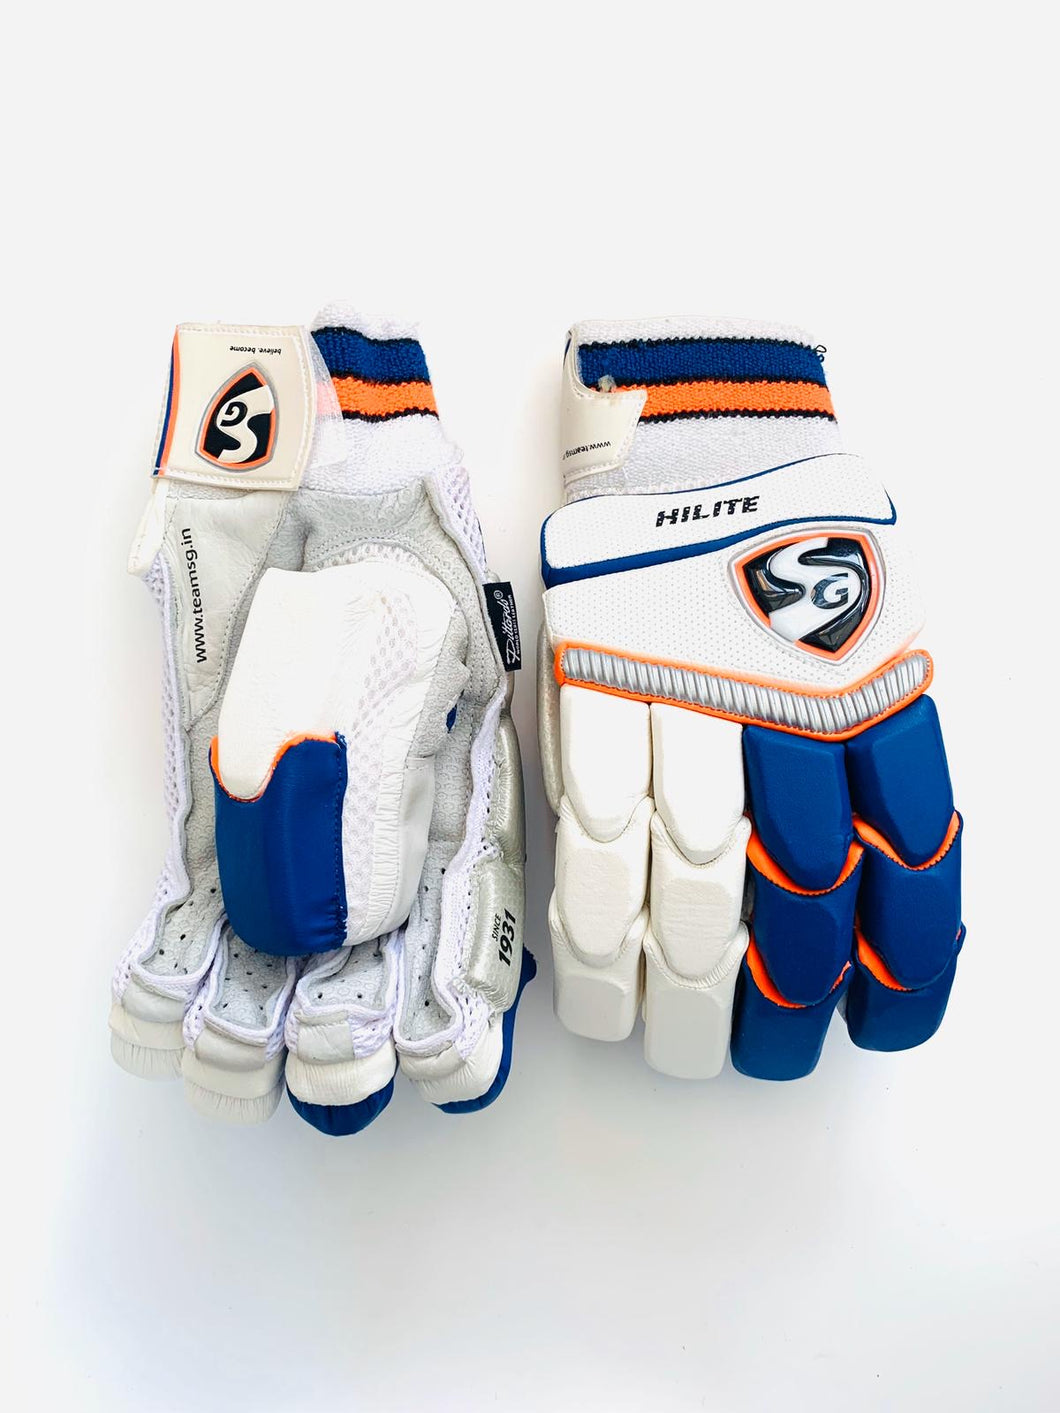 SG Hilite Cricket Batting Gloves | Top of the Range | Left Hand - DKP Cricket Online